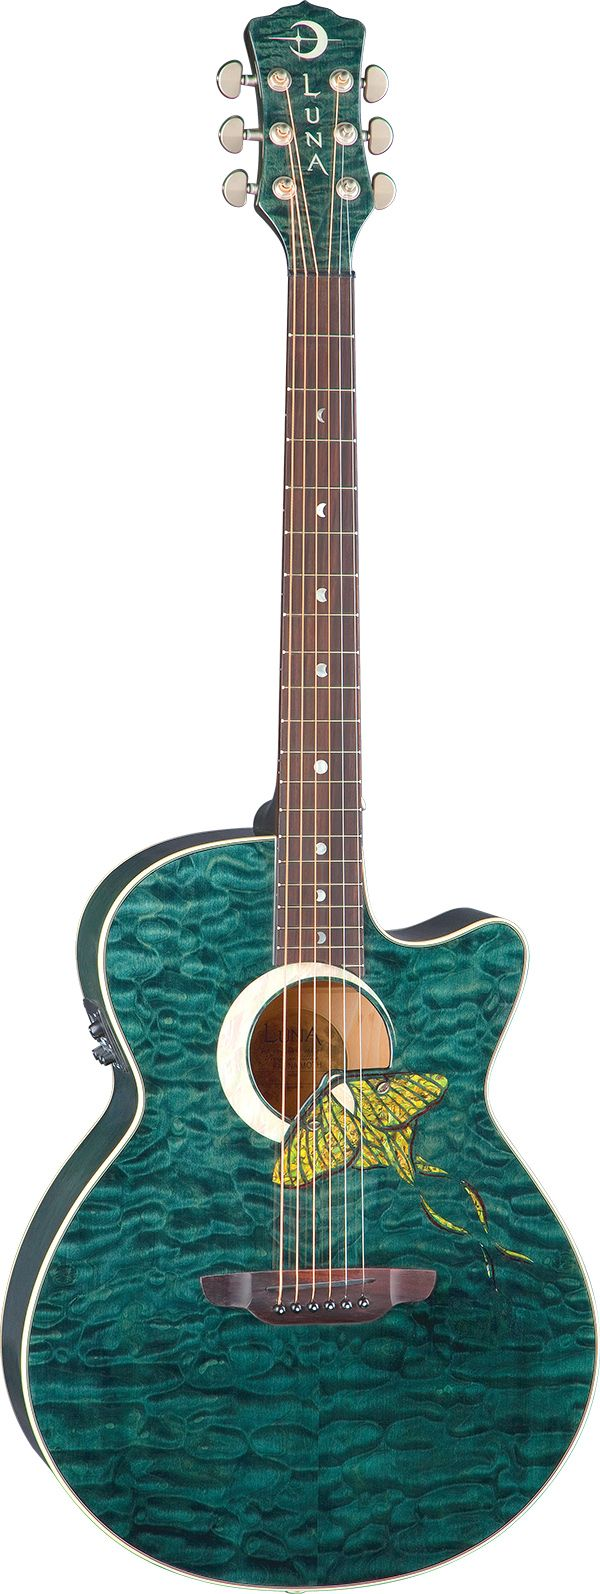 Luna Guitars - Fauna Luna Moth acoustic electric